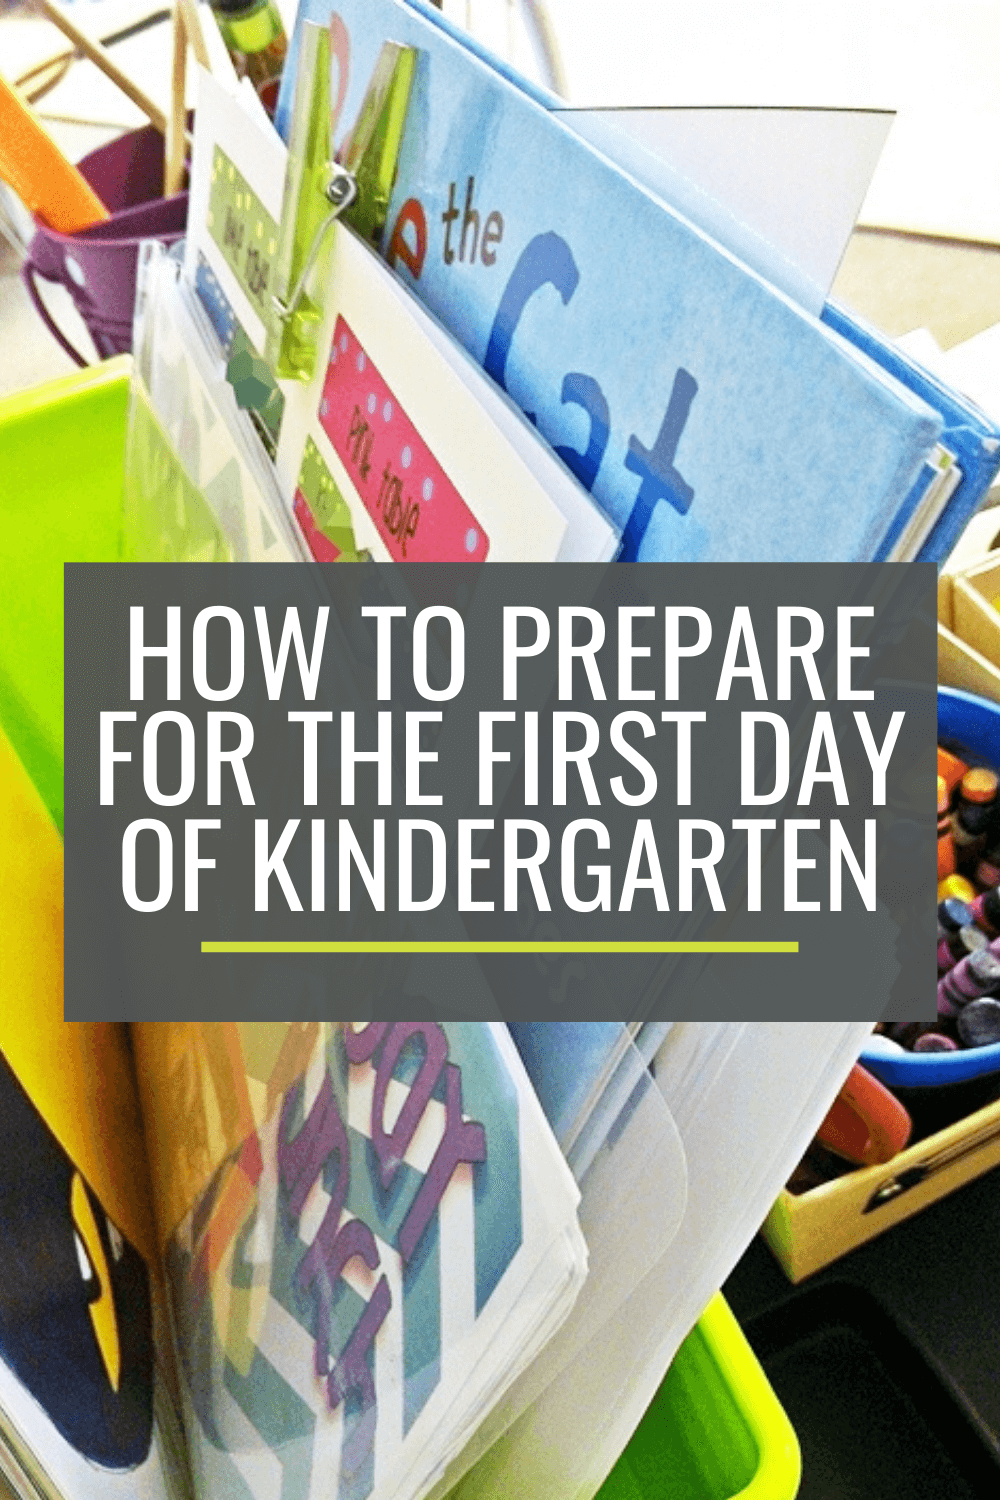 How to Prepare for the First Day of Kindergarten